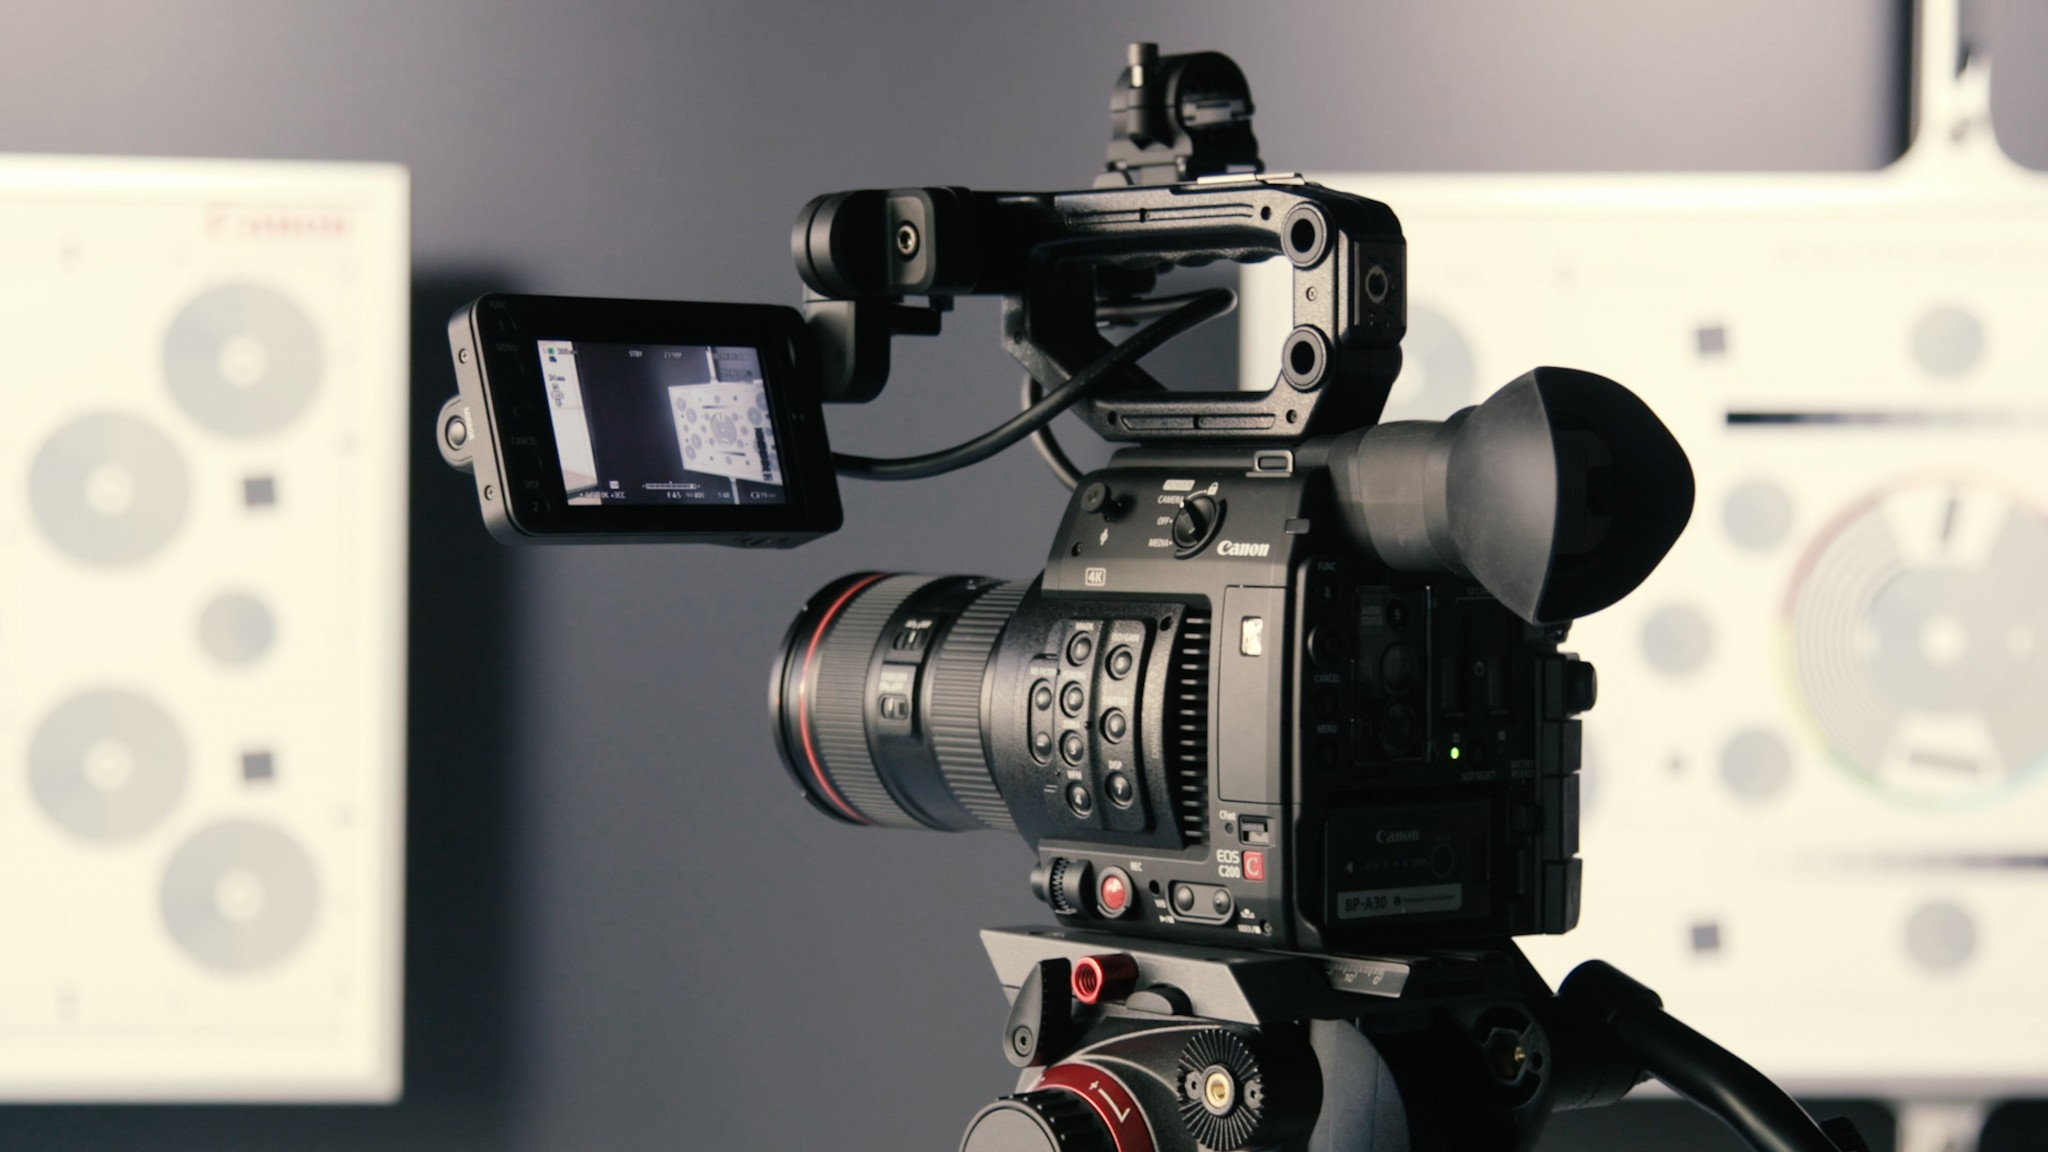 7 Tips On How to Buy a Professional Video Camera